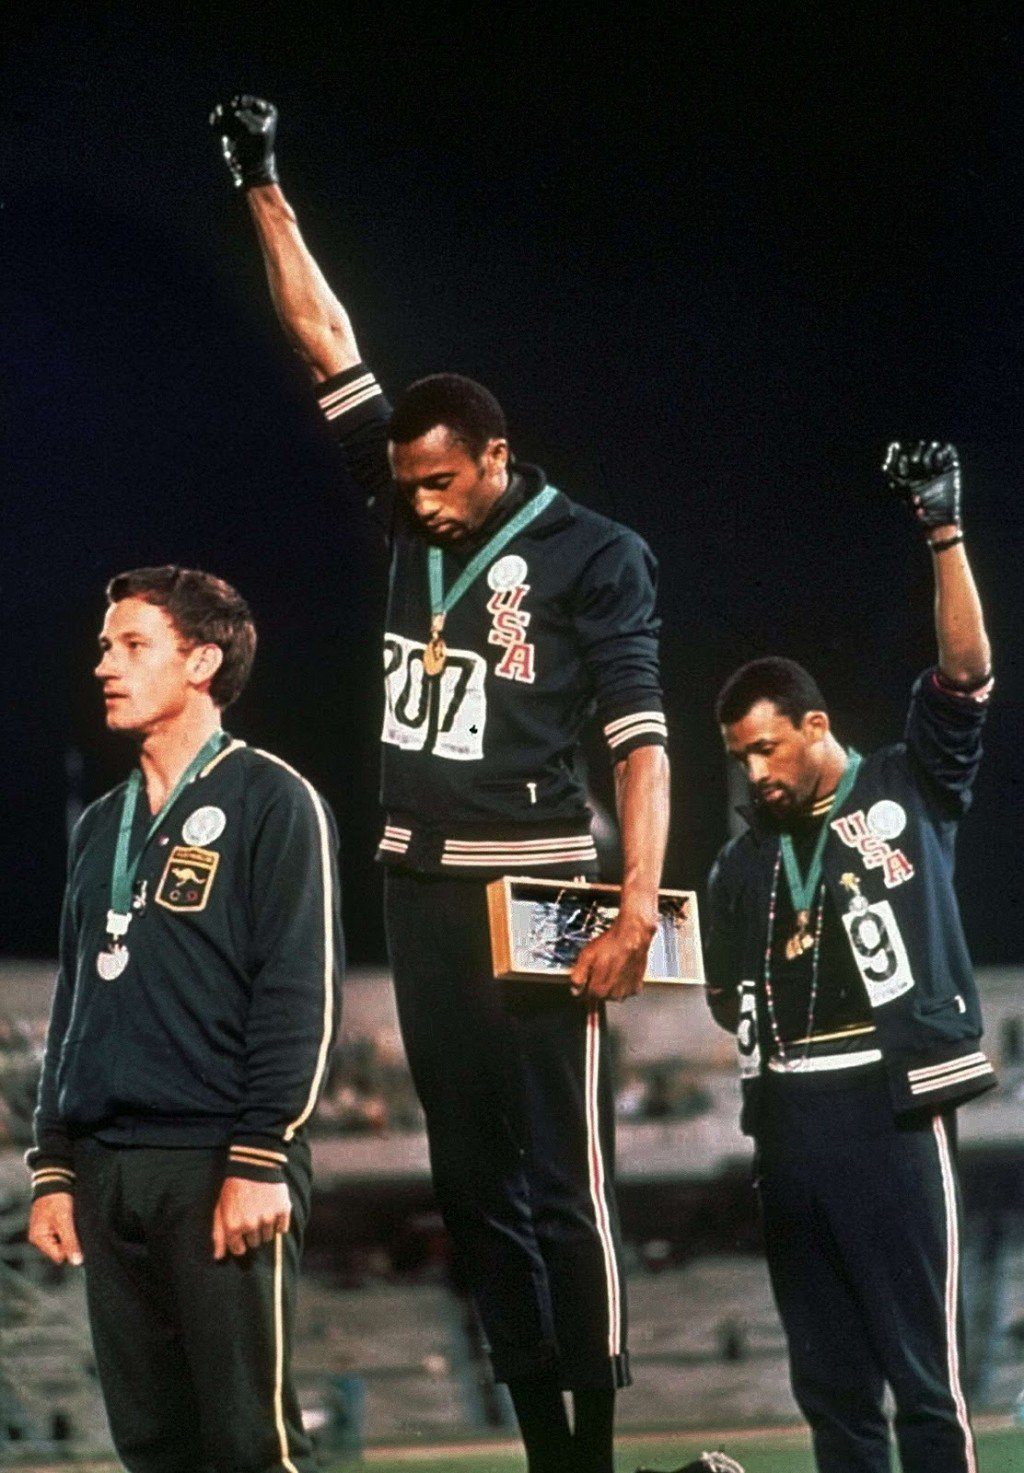 griot-magazine-peter-norman-white-man-in-that-photo-black-power-salute-1024x1473-1.jpg